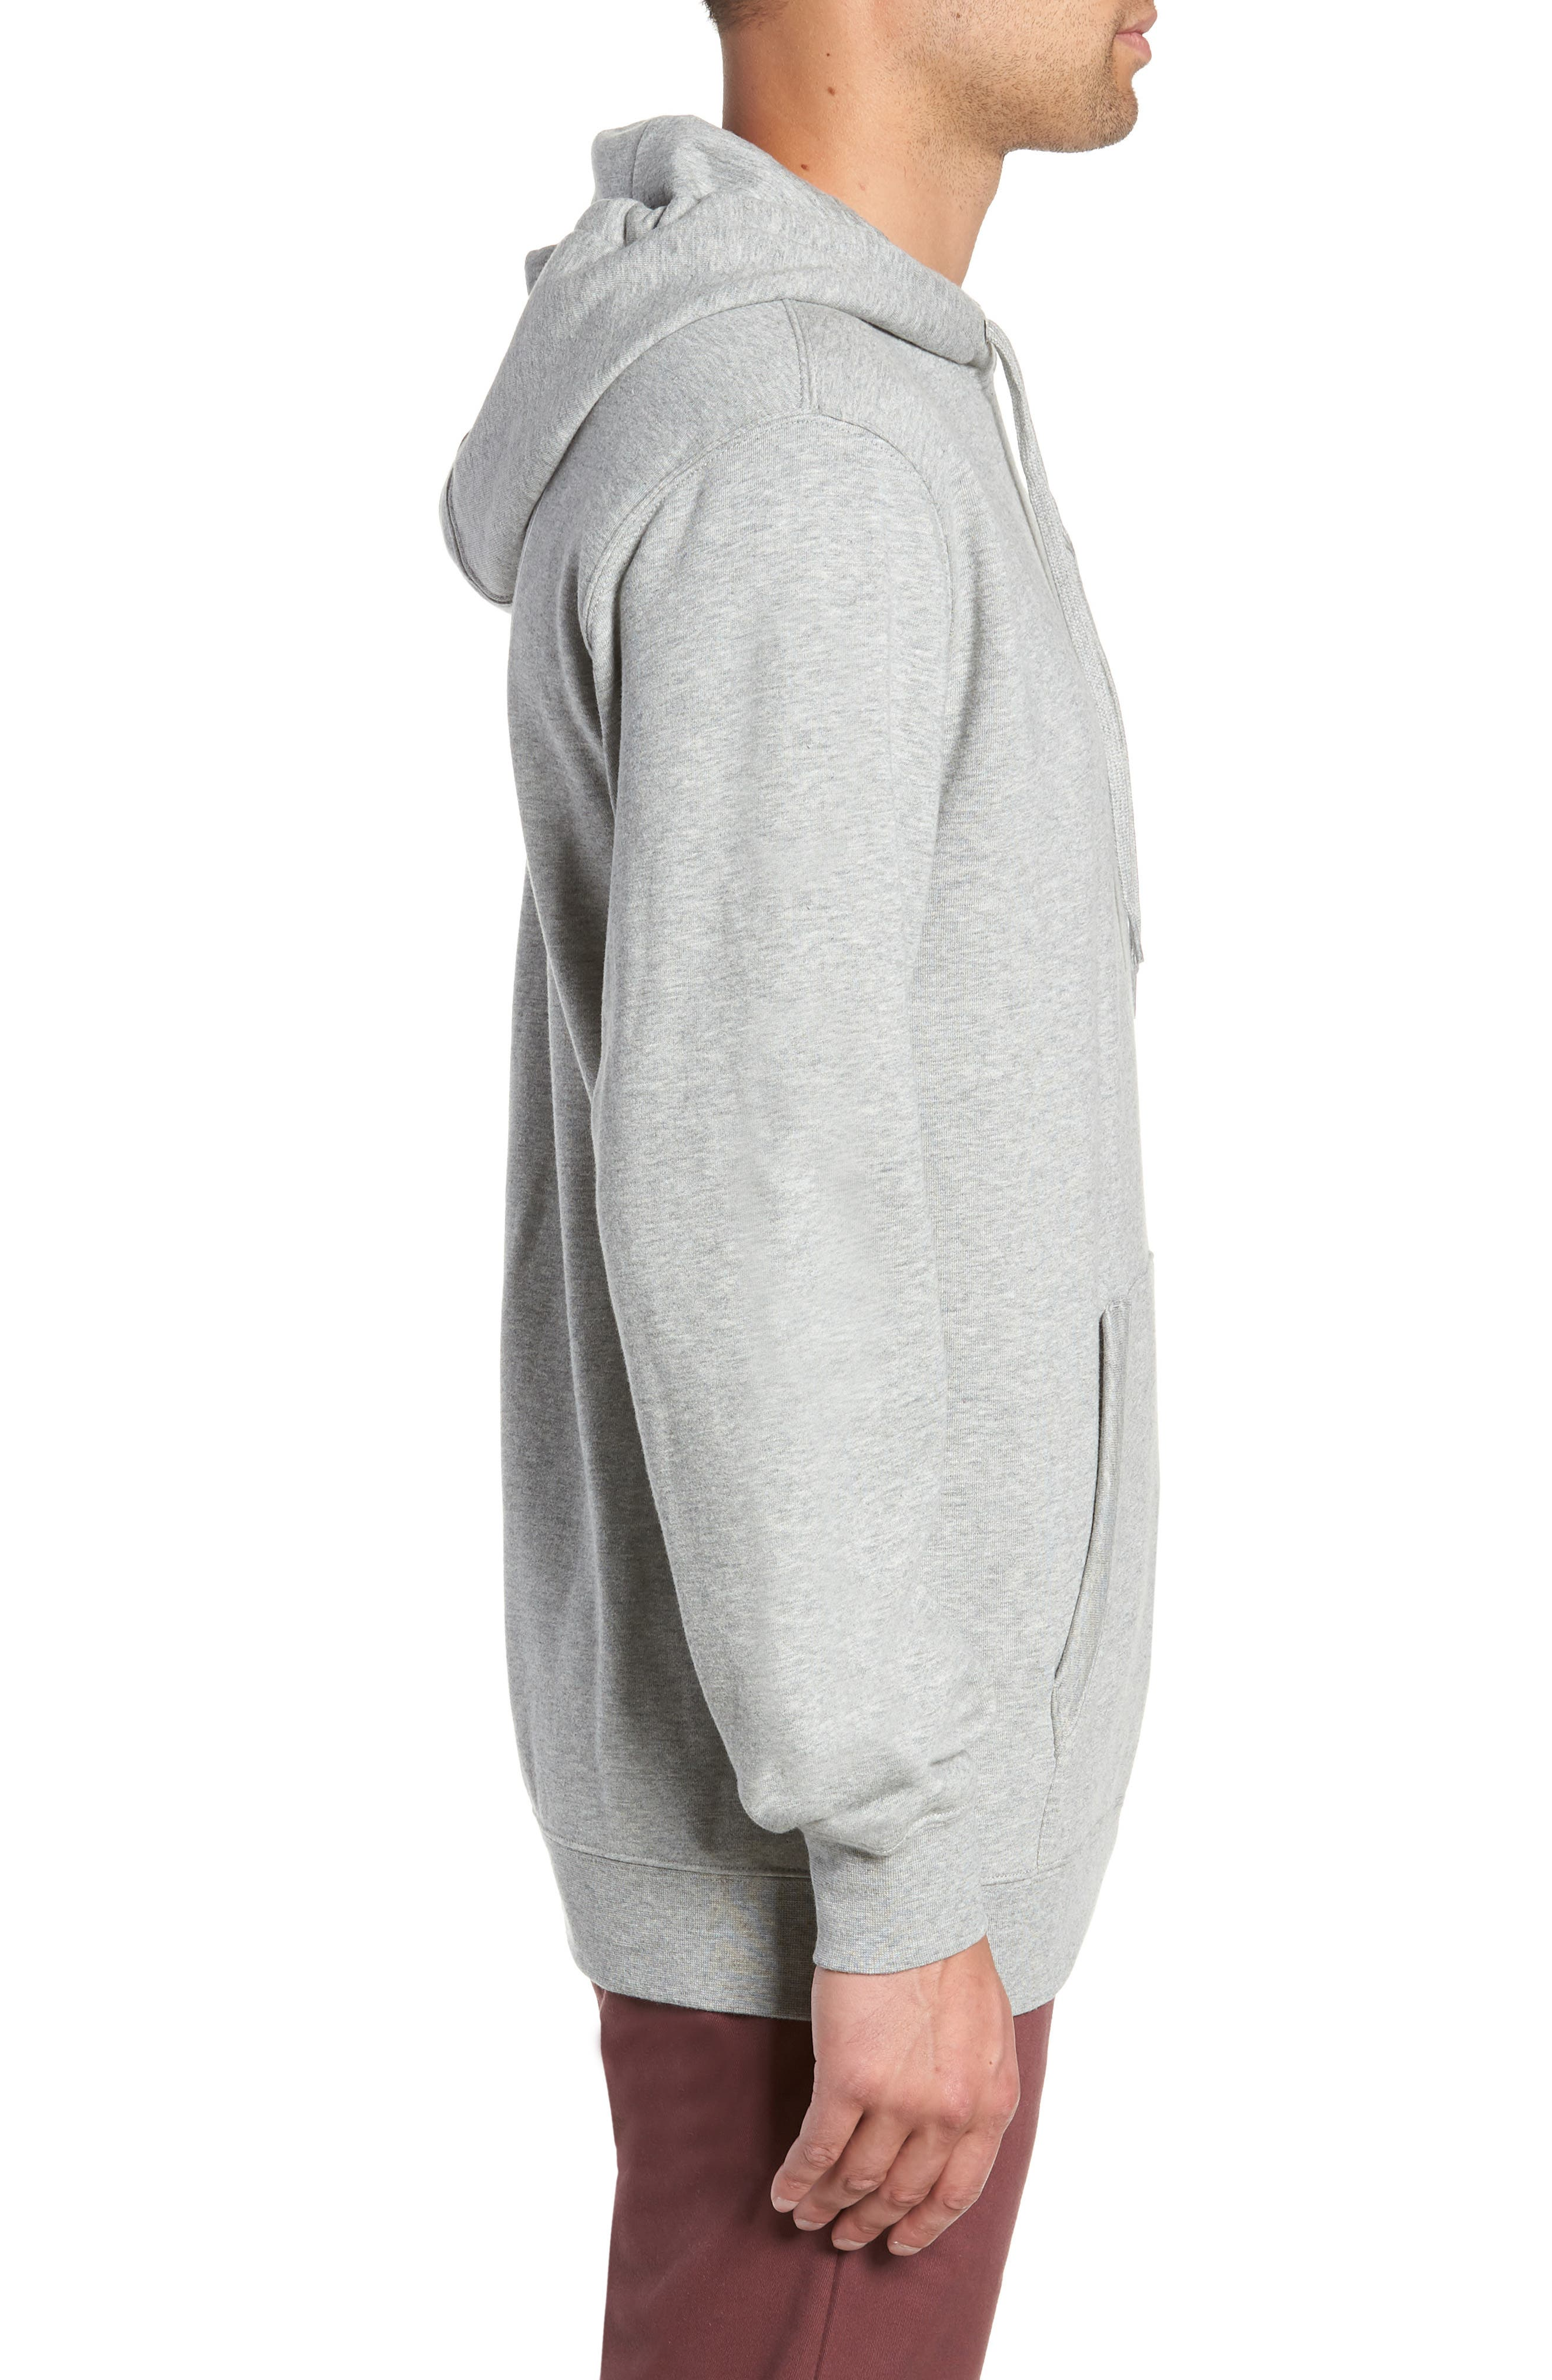 Best in Class Hooded Sweatshirt,                             Alternate thumbnail 3, color,                             CEMENT HEATHER